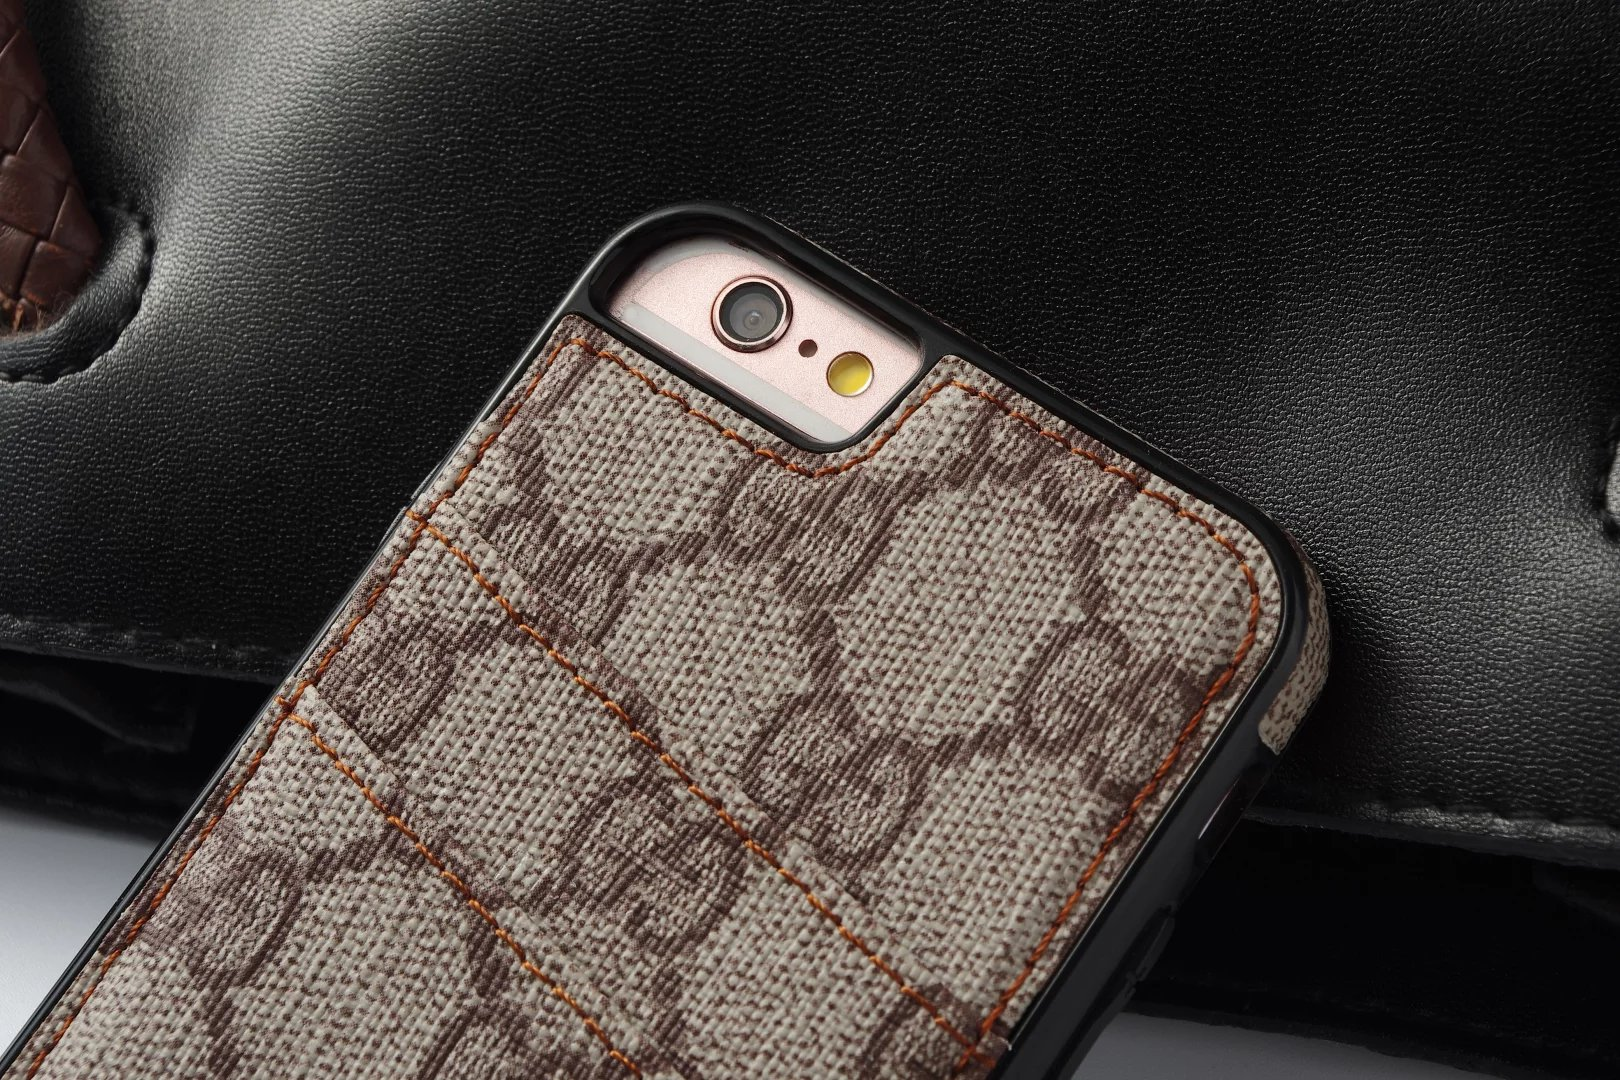 phone covers for iphone 6 Plus iphone 6 Plus case fashion iphone6 plus case apple iphone 6 covers best cases for iphone iphone fashion cases iphone 6 designer wallet case cellular cases and covers iphone 6 cool covers